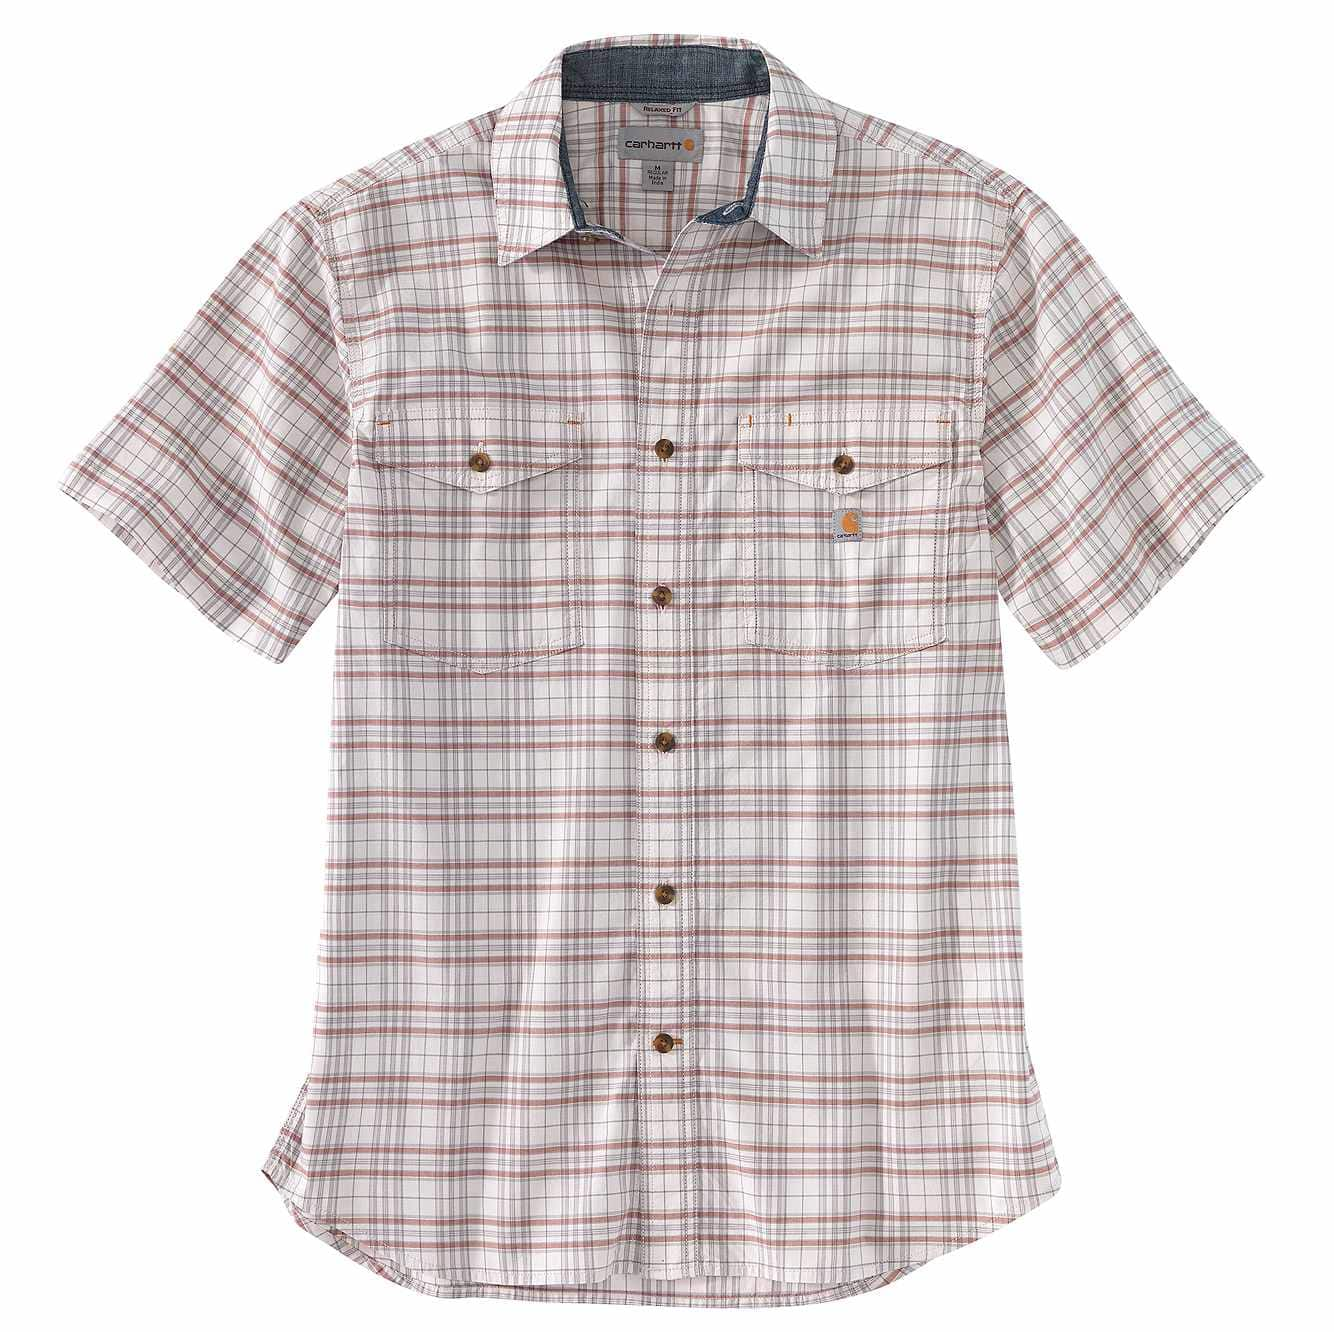 Picture of Rugged Flex® Relaxed Fit Lightweight Short-Sleeve Plaid Shirt in Malt